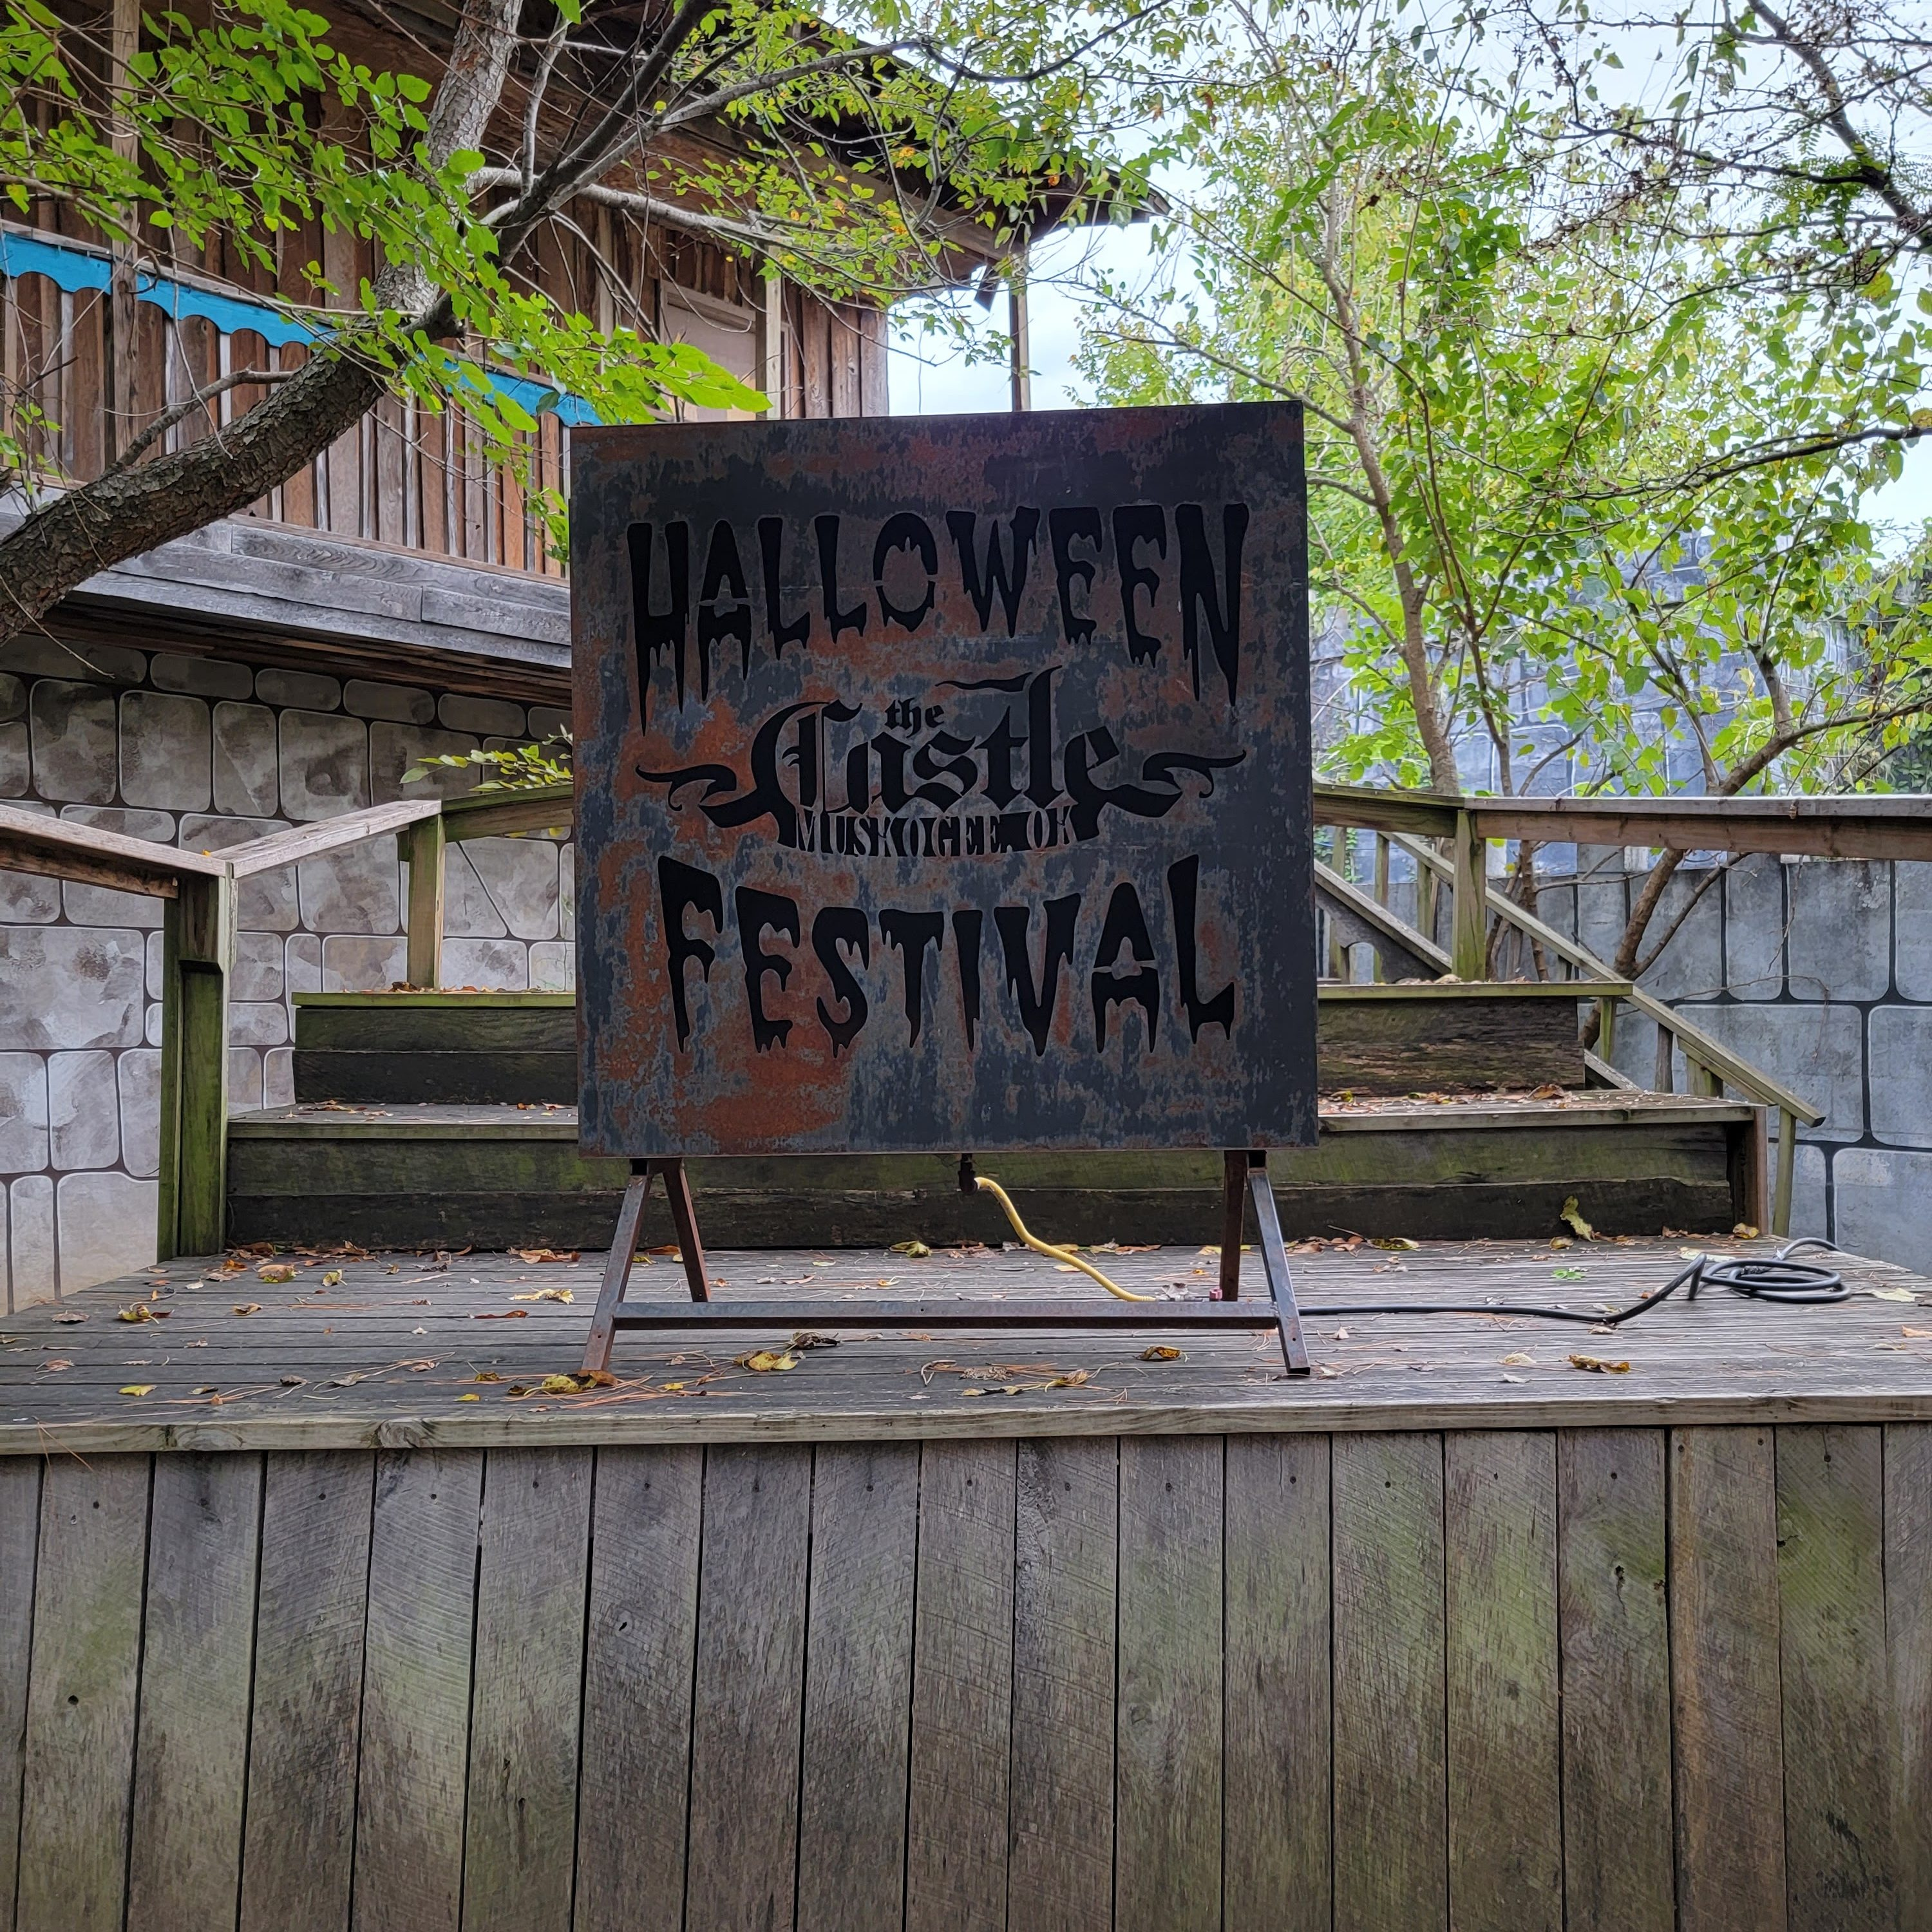 """Image shows a metal sign atop a wooden platform. The sign reads """"Halloween Festival at The Castle Muskogee"""""""